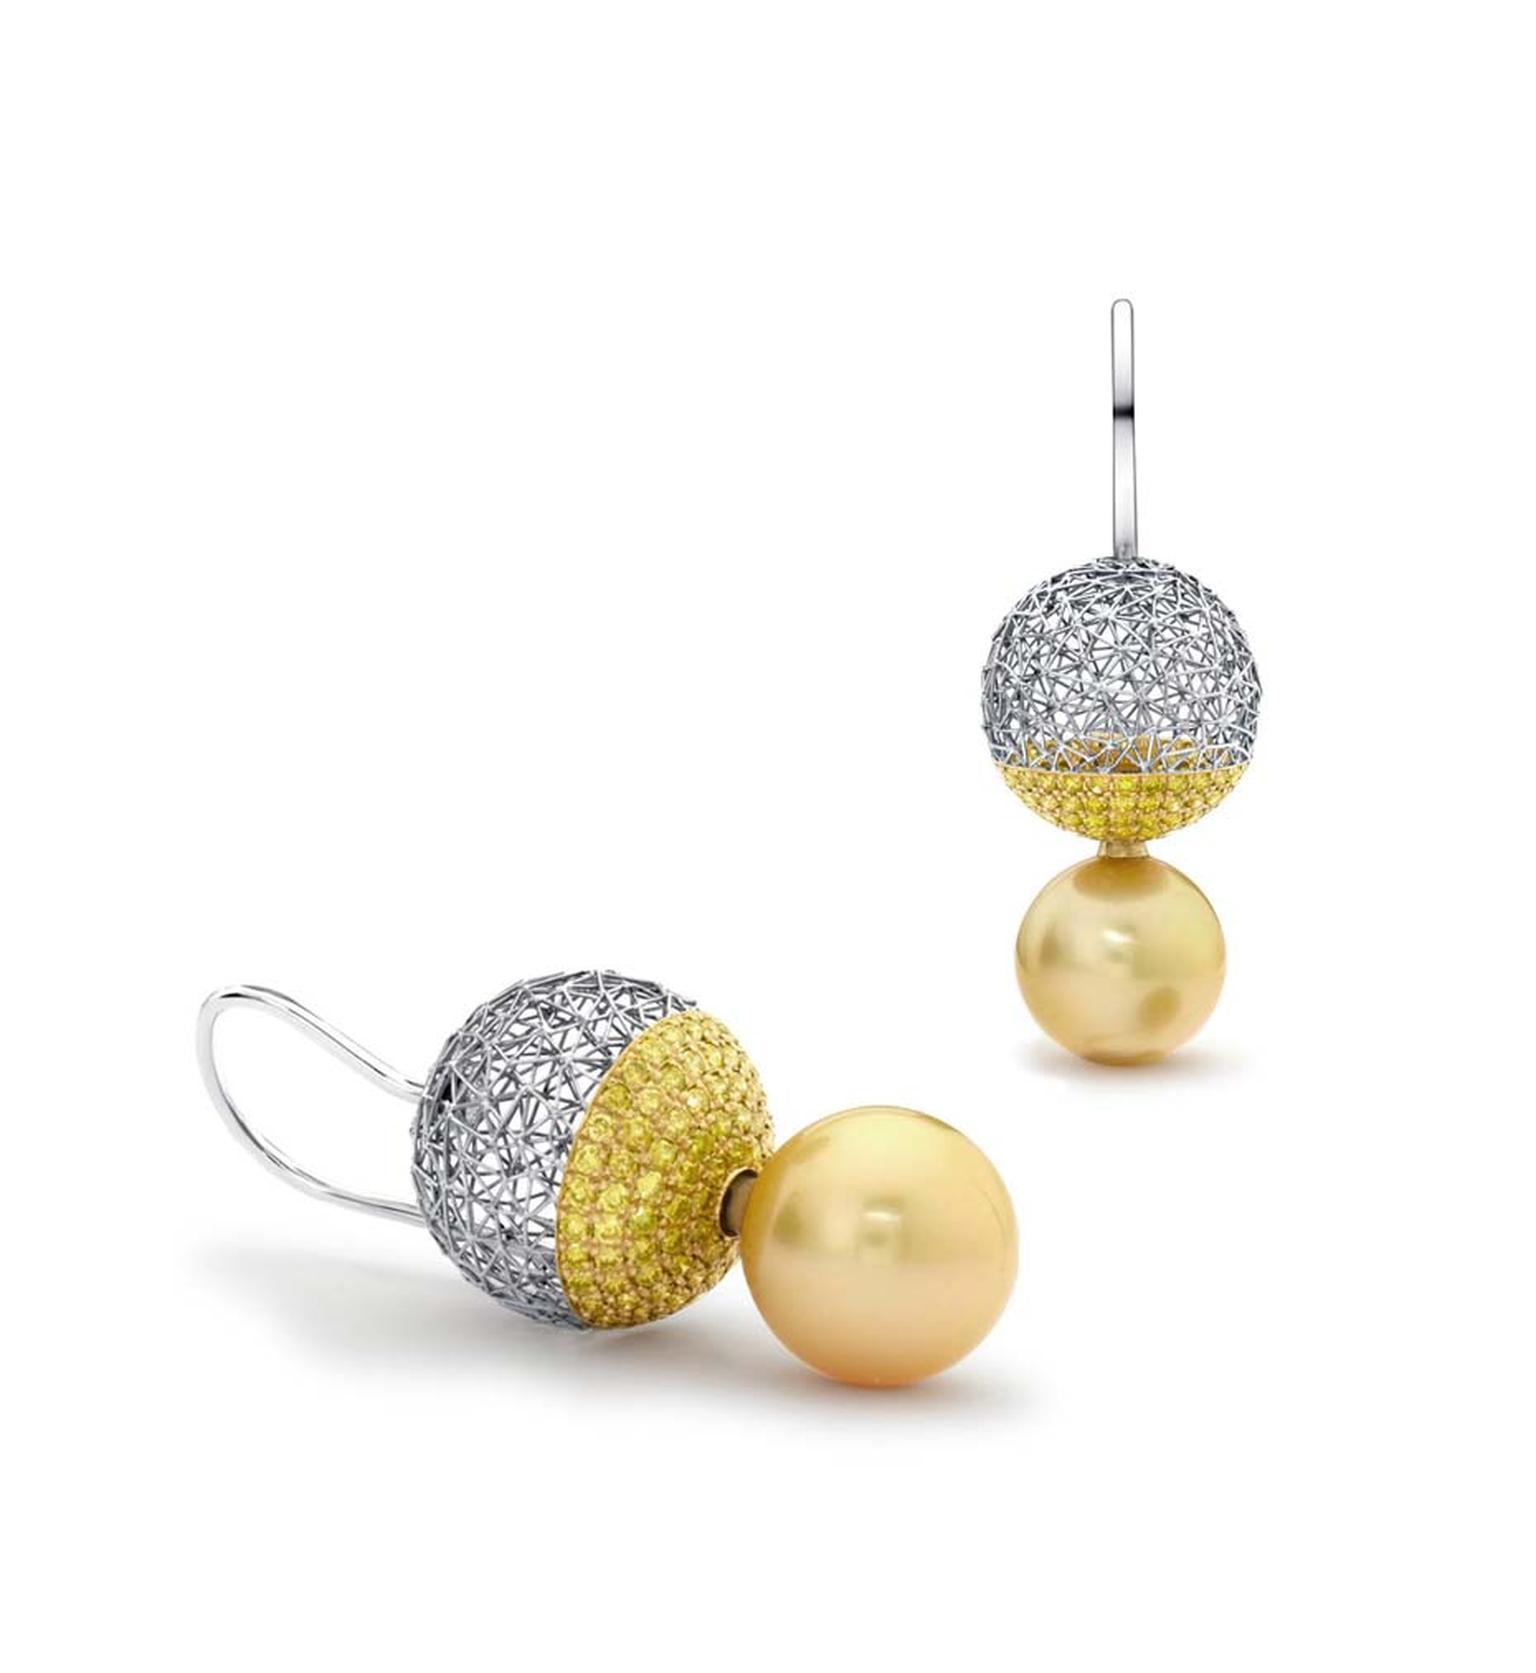 Tom Rucker Geo Eclipse earrings in platinum and gold featuring rare natural Fancy yellow diamonds and interchangeable South Sea pearls.